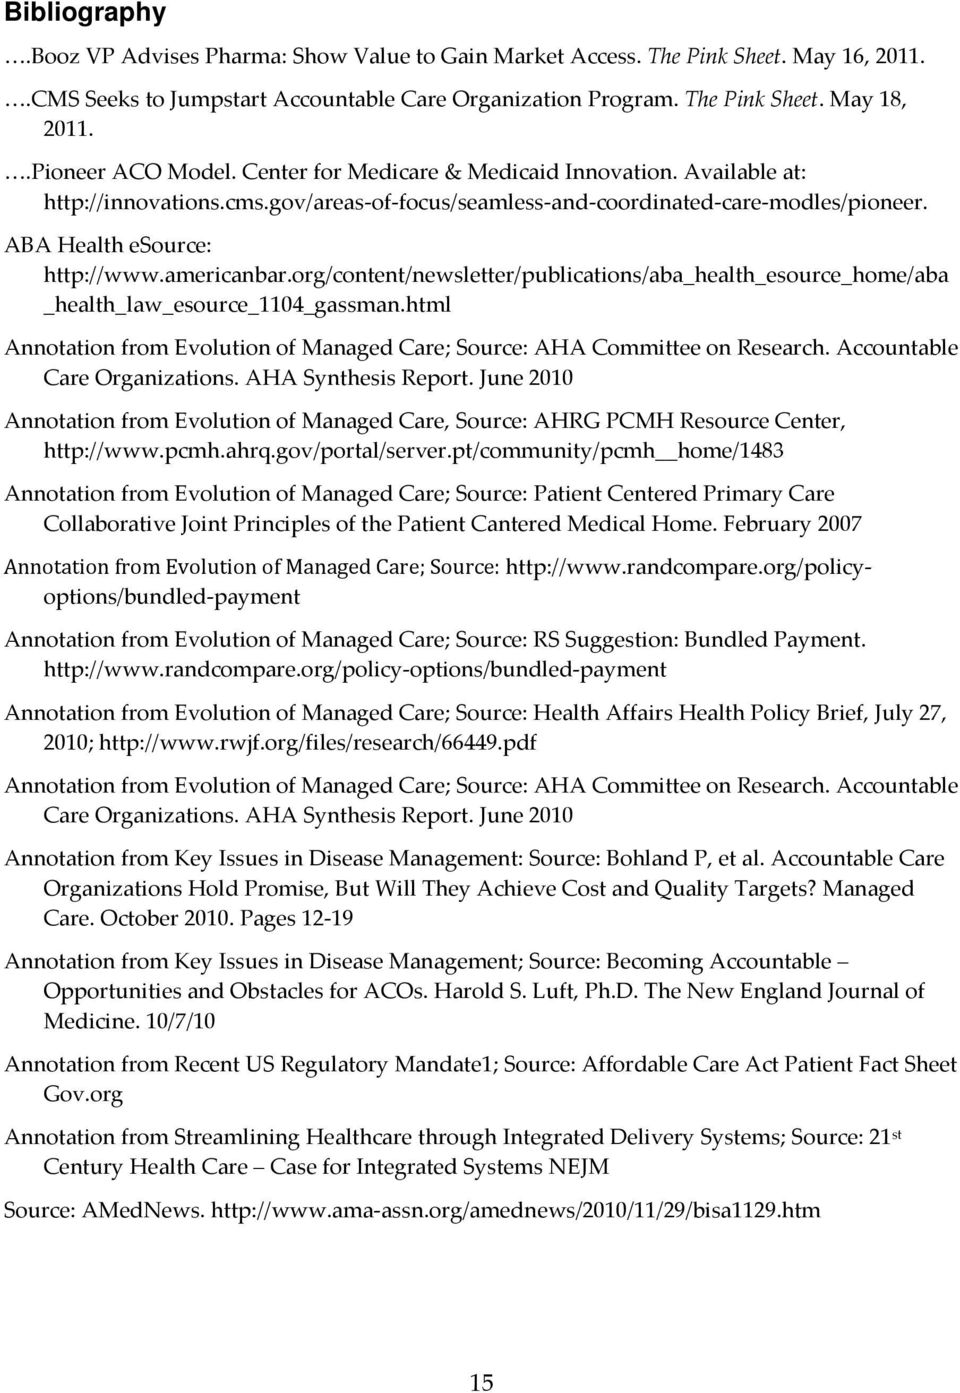 americanbar.org/content/newsletter/publications/aba_health_esource_home/aba _health_law_esource_1104_gassman.html Annotation from Evolution of Managed Care; Source: AHA Committee on Research.